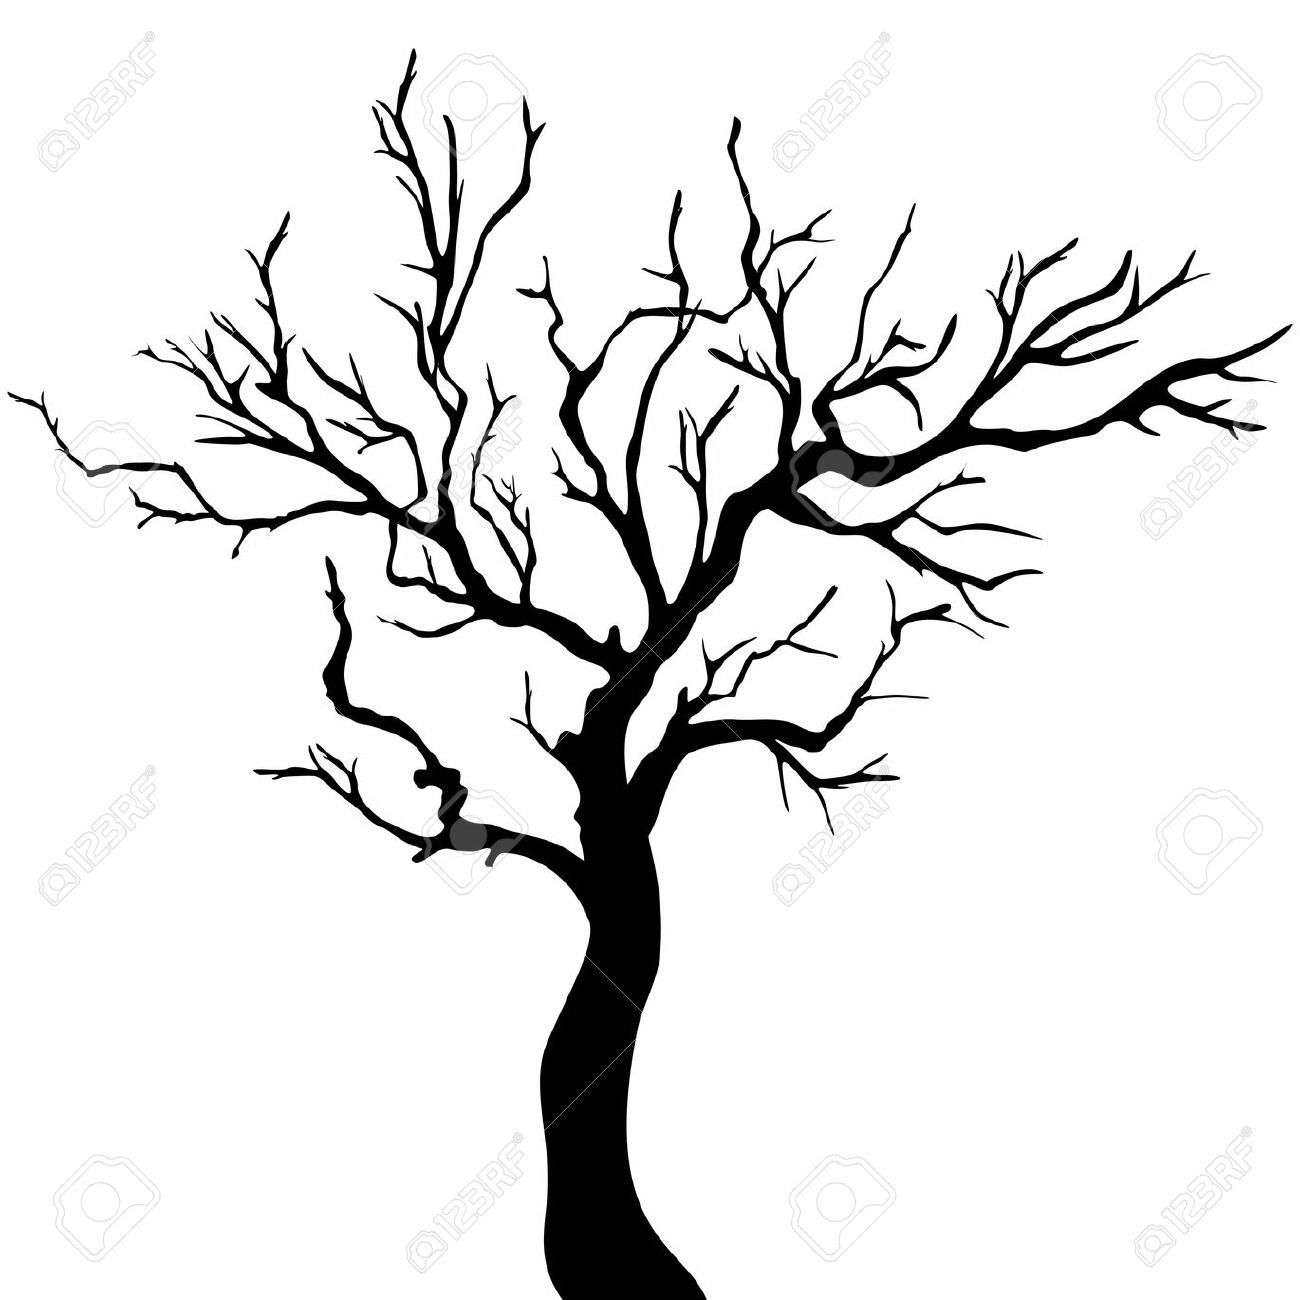 tree silhouettes royalty free cliparts vectors and stock rh pinterest com tree silhouette clip art free download tree silhouette clip art free